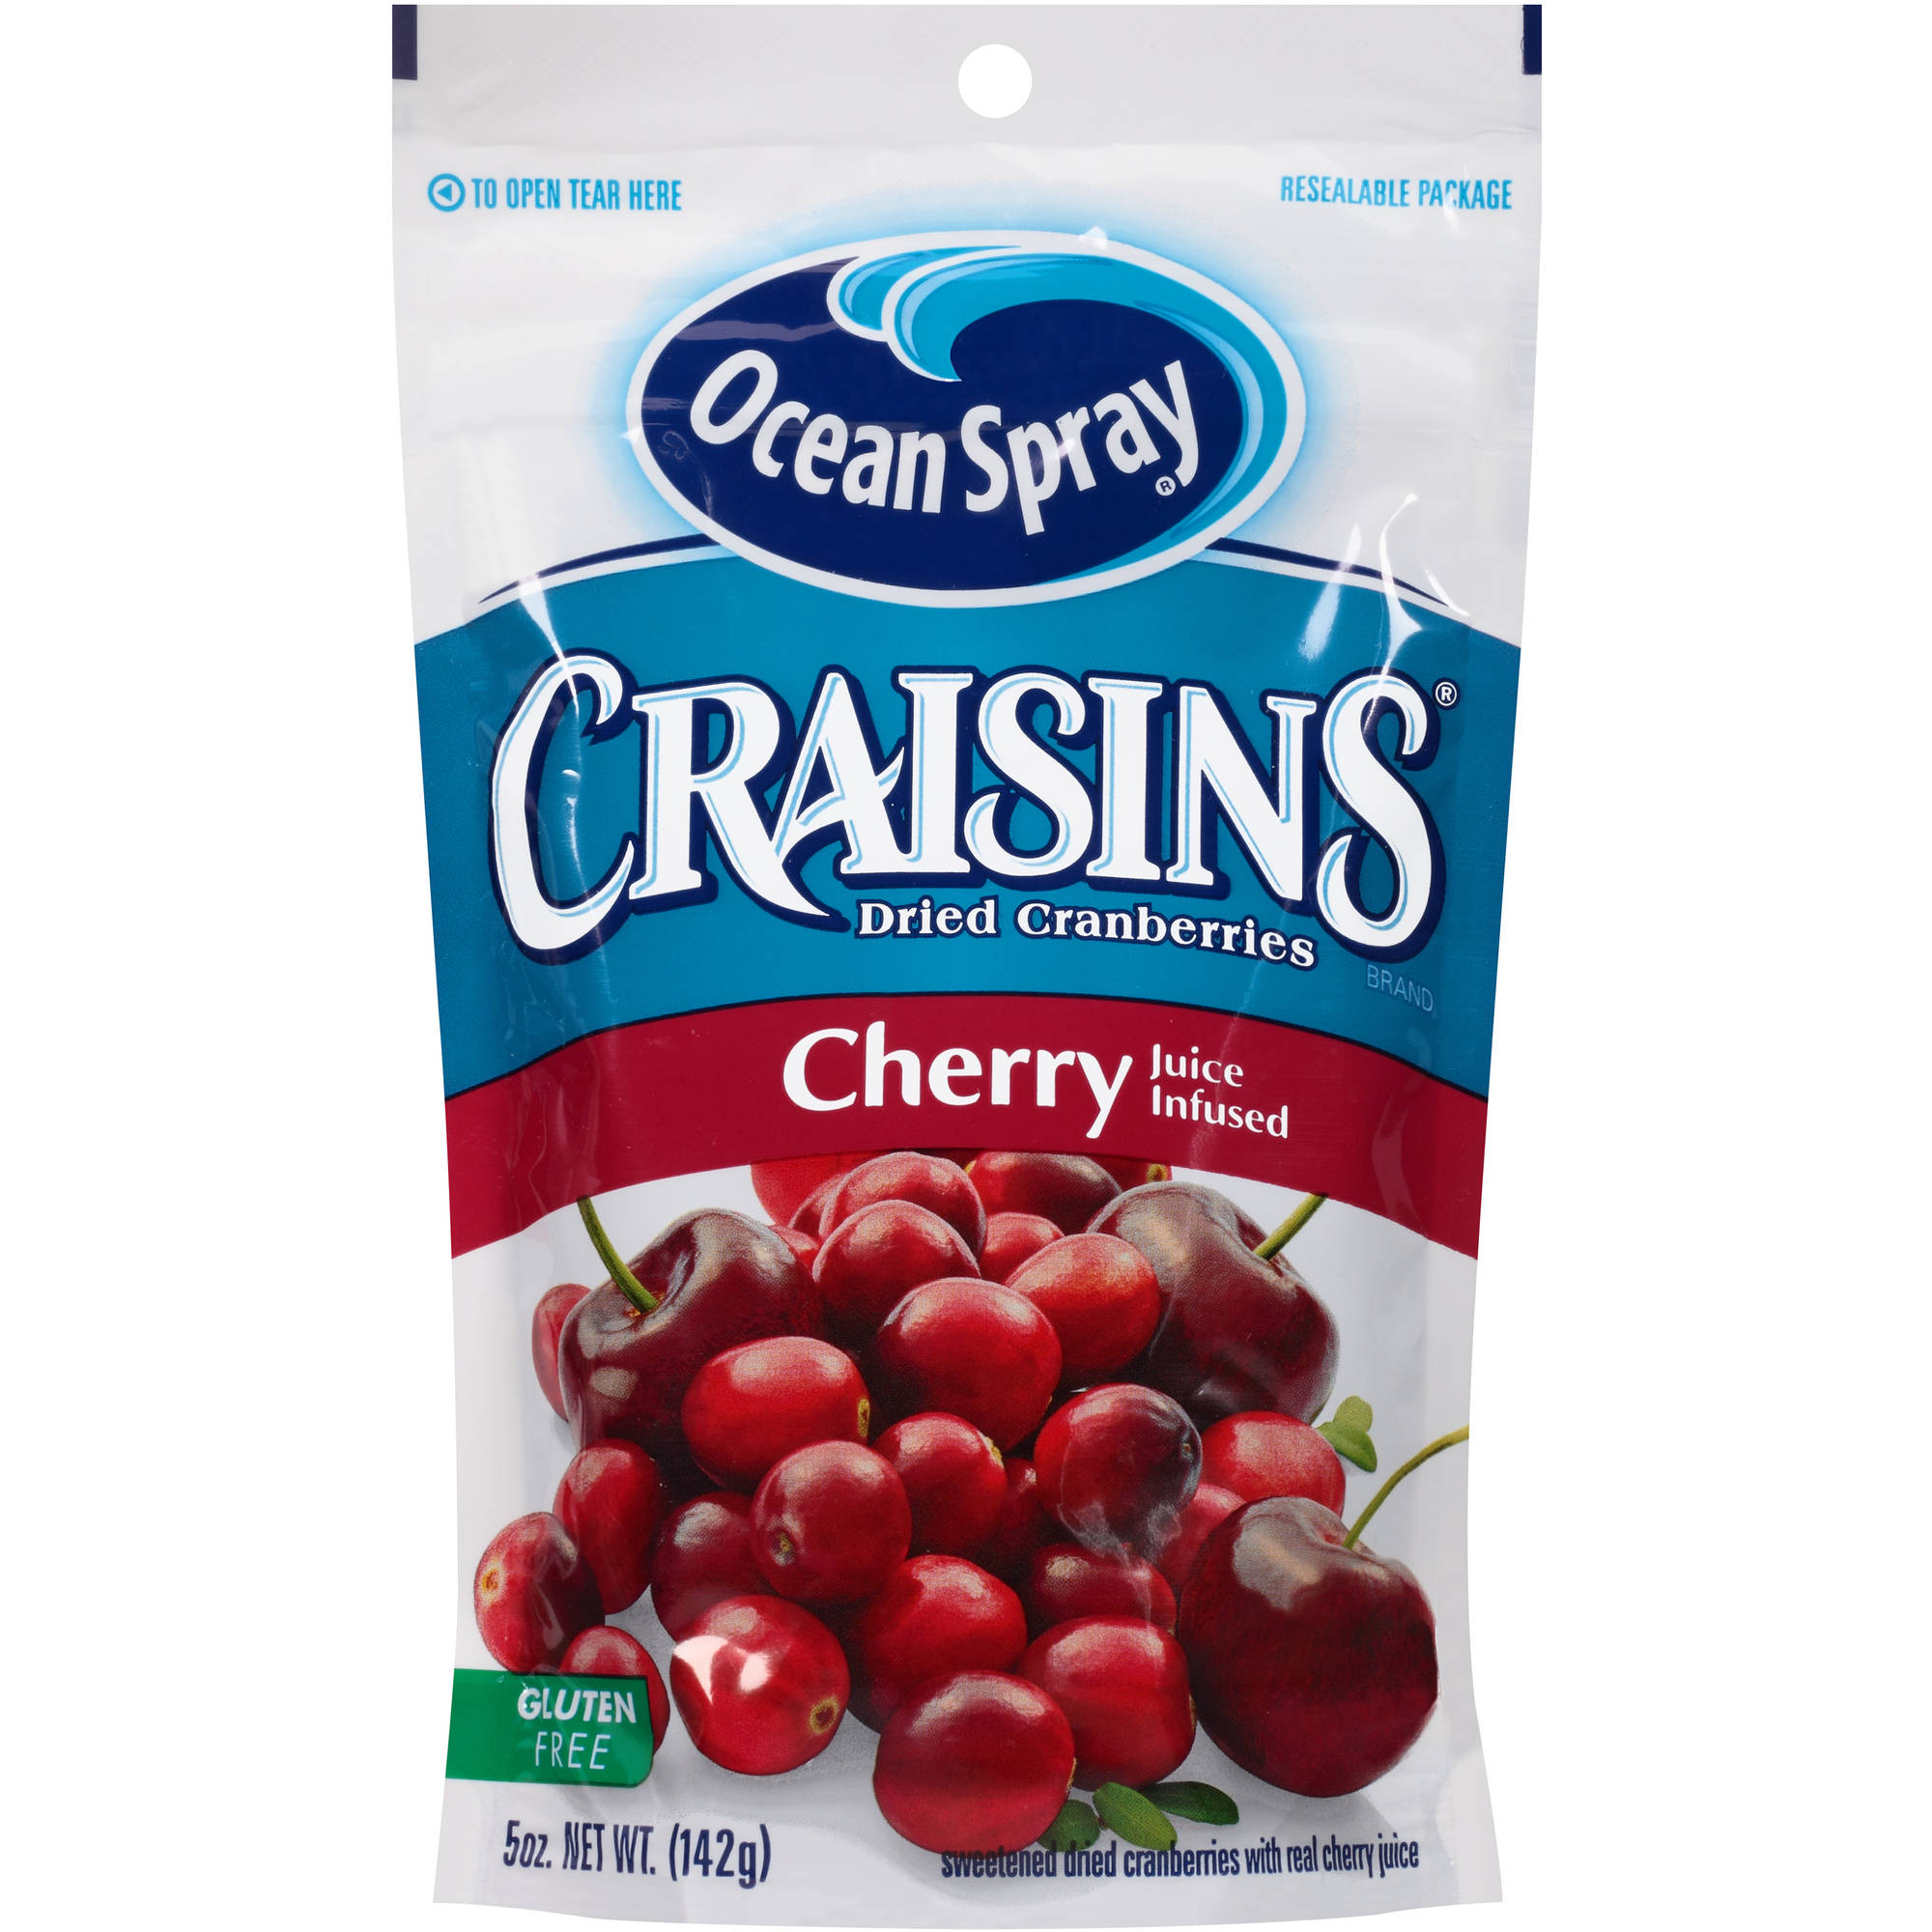 Craisins Cherry Dried Cranberries, 5 oz